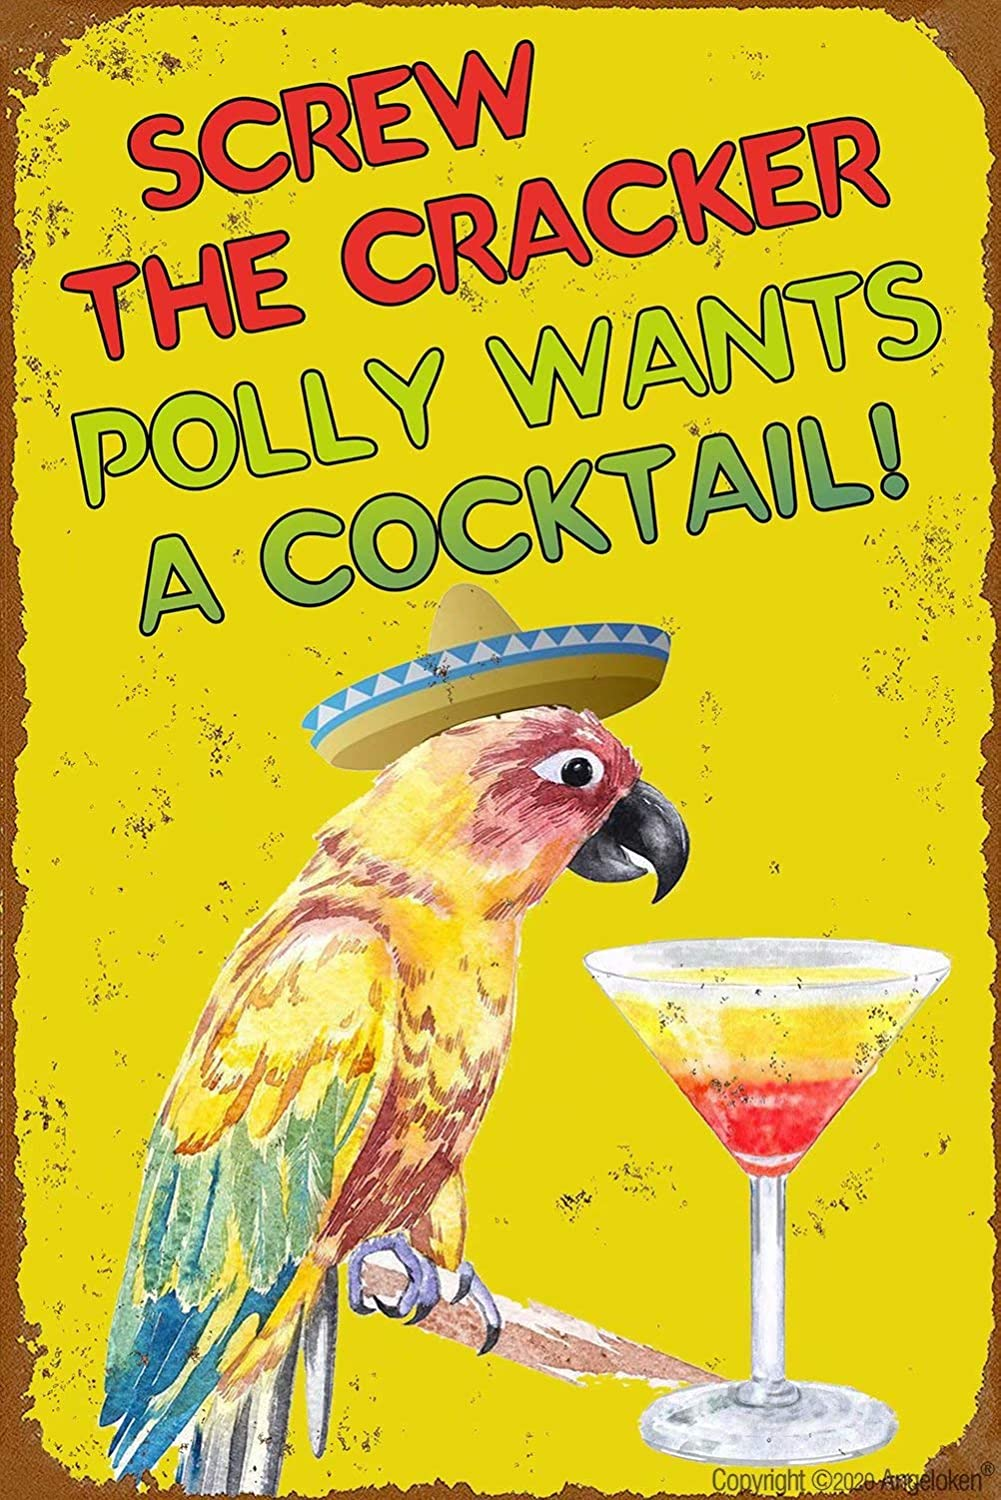 Angeloken Retro Metal Sign Vintage TIN Sign Screw The Cracker Polly Wants a Cocktail Sign for Plaque Poster Cafe Wall Art Sign Gift 8 X 12 INCH